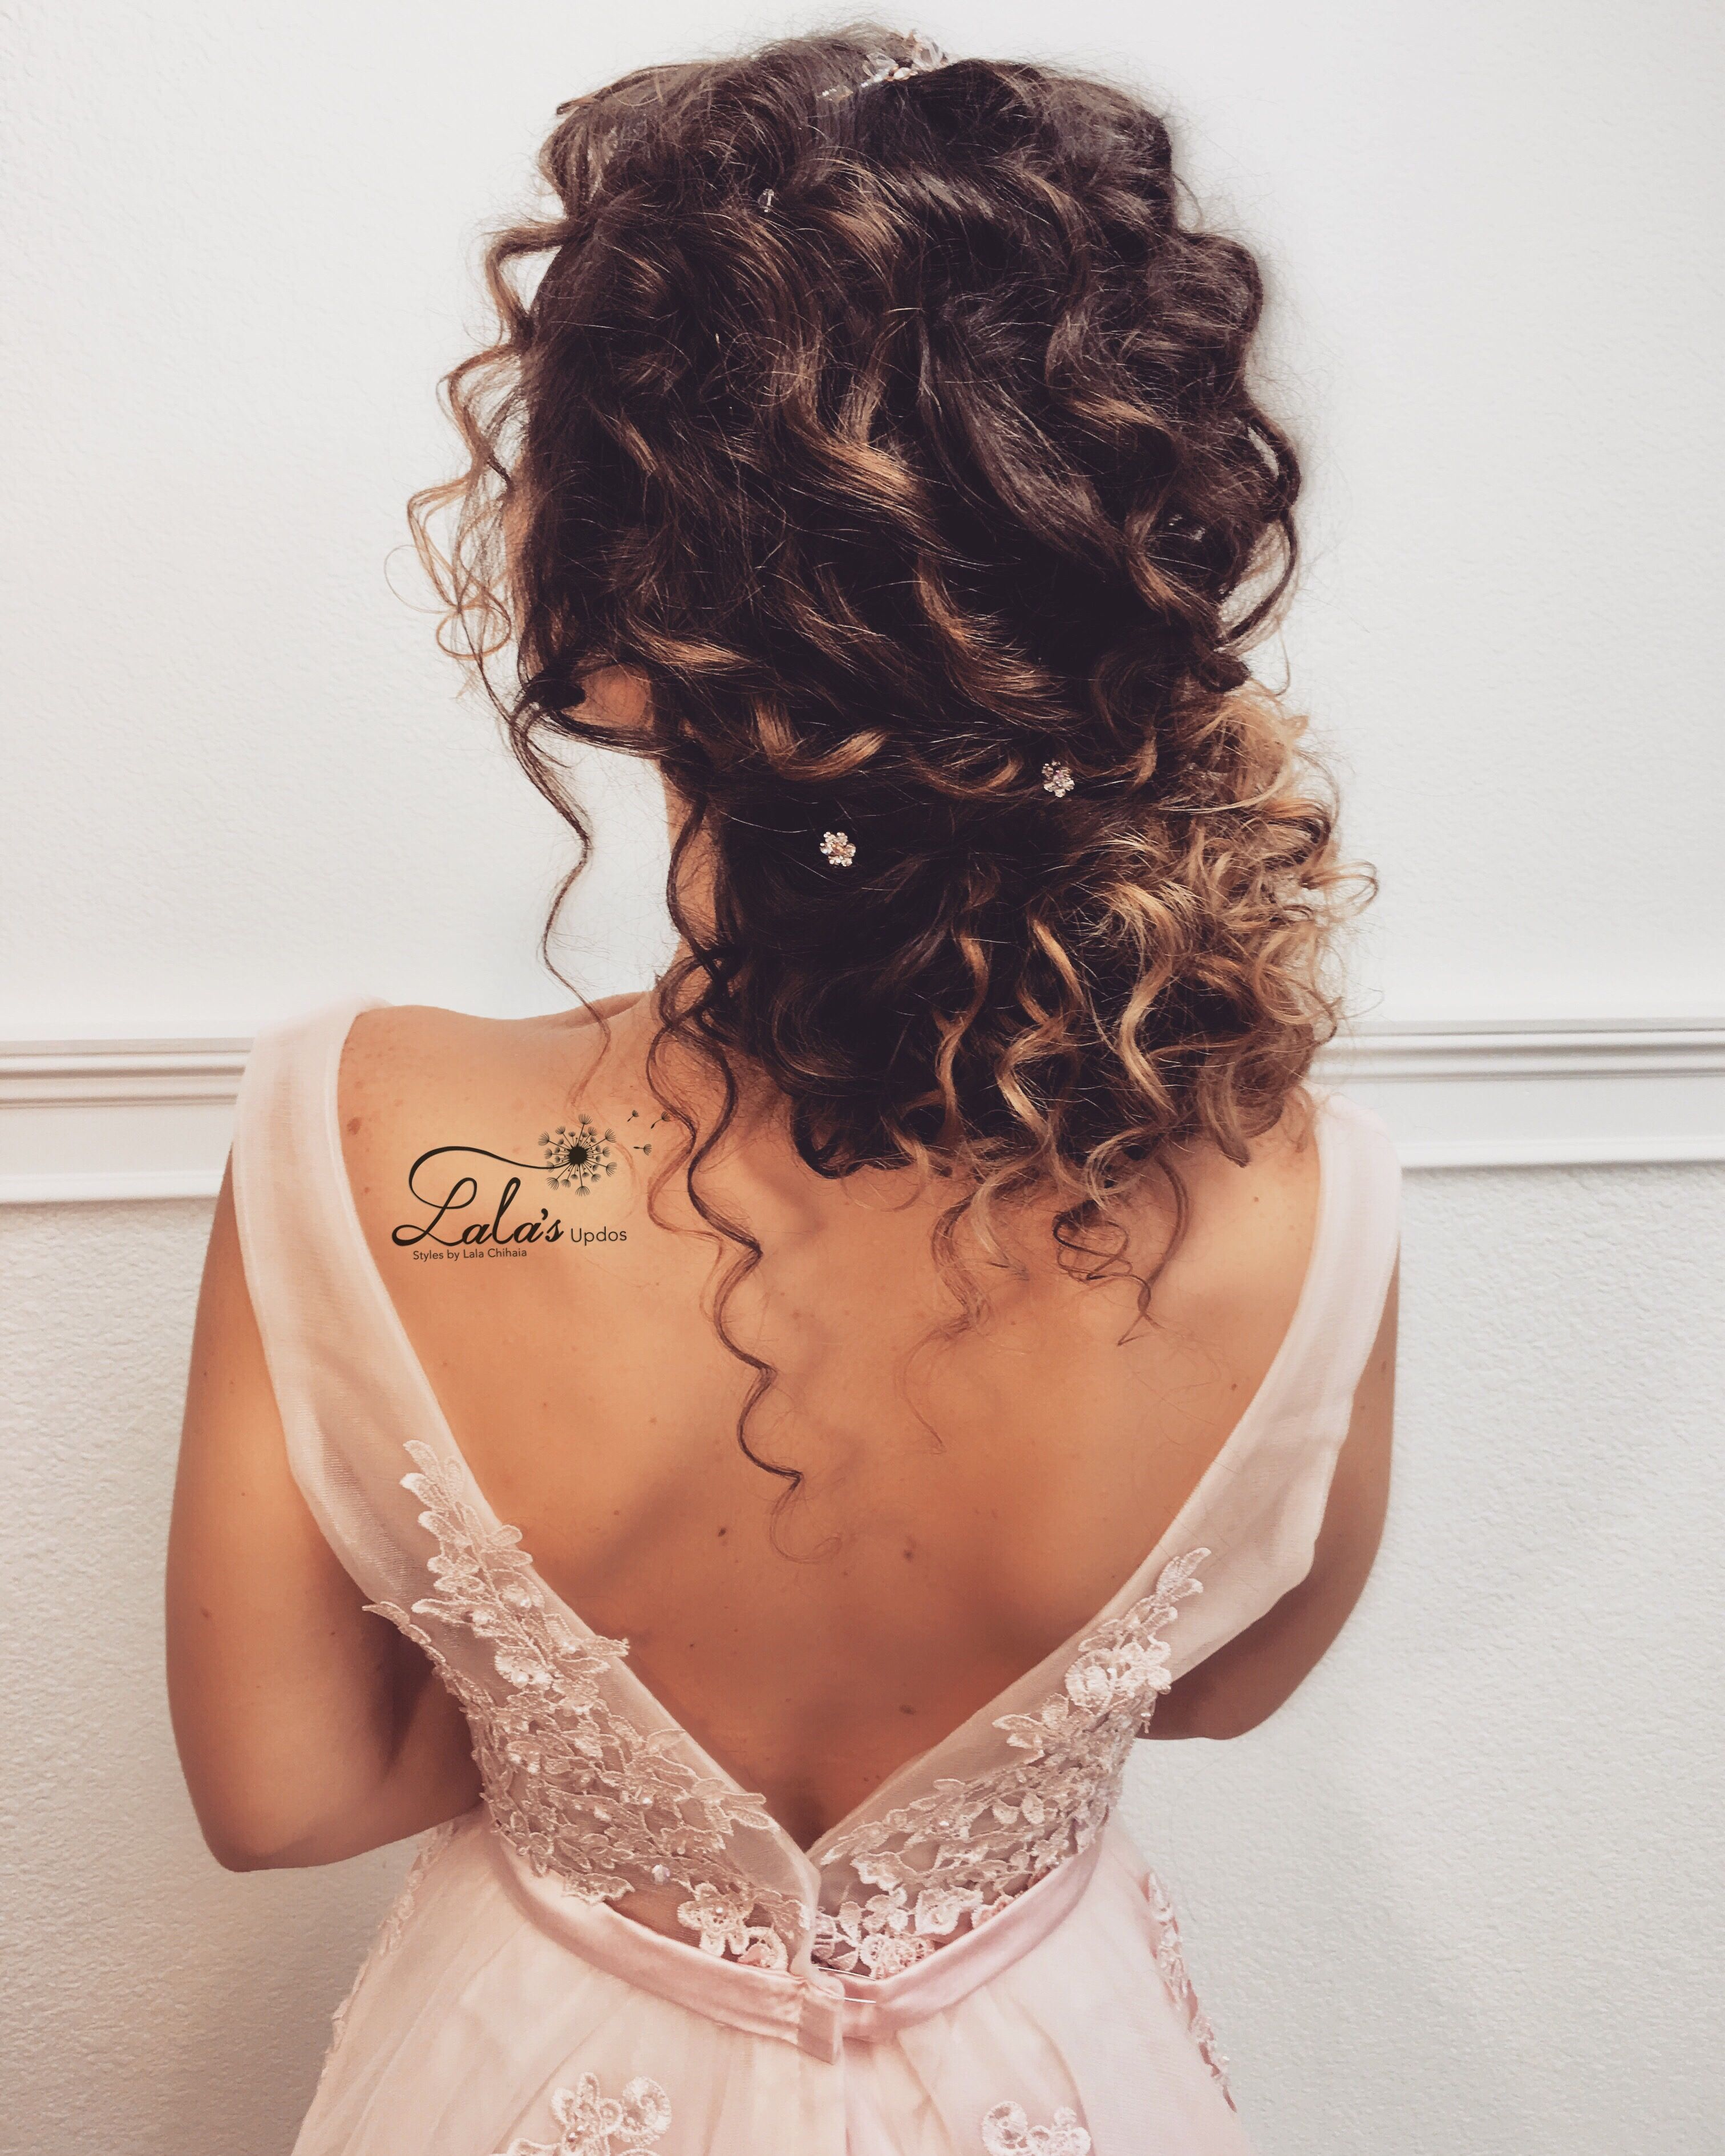 Check Out My Other Pins Thatgoodhair With Images